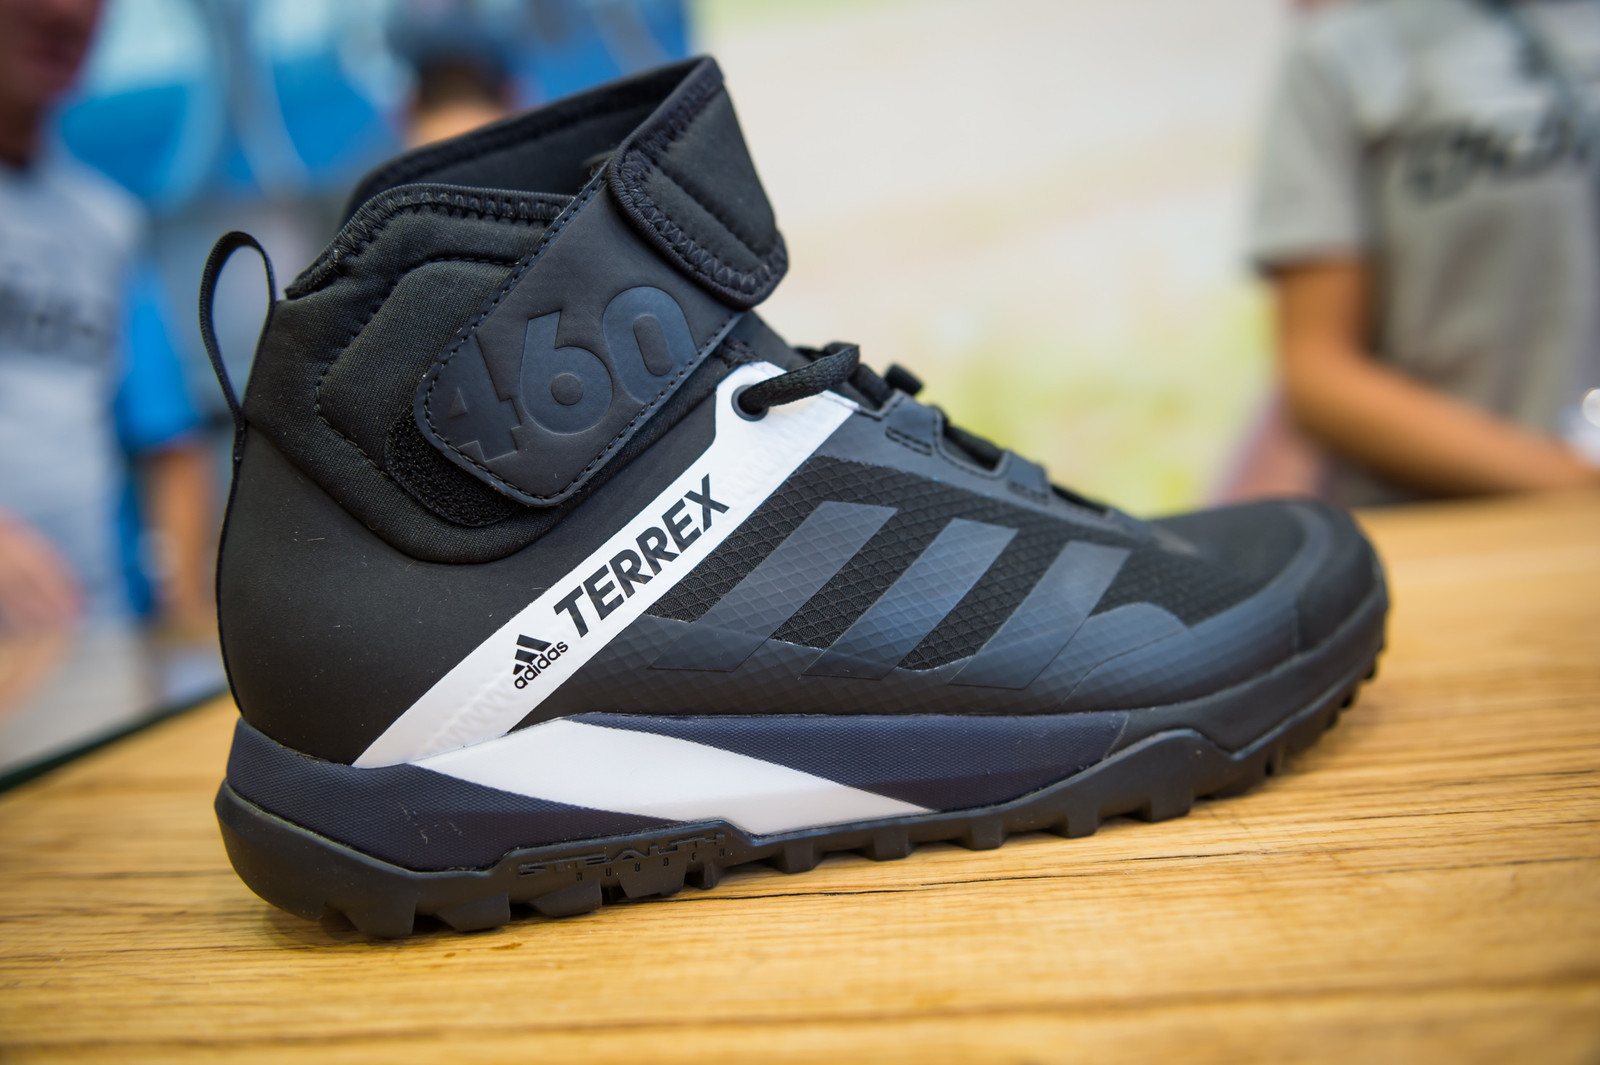 Adidas Terrex Trailcross Protect Shoe - EUROBIKE - 2017 Mountain Bike Apparel and Protective Gear - Mountain Biking Pictures - Vital MTB